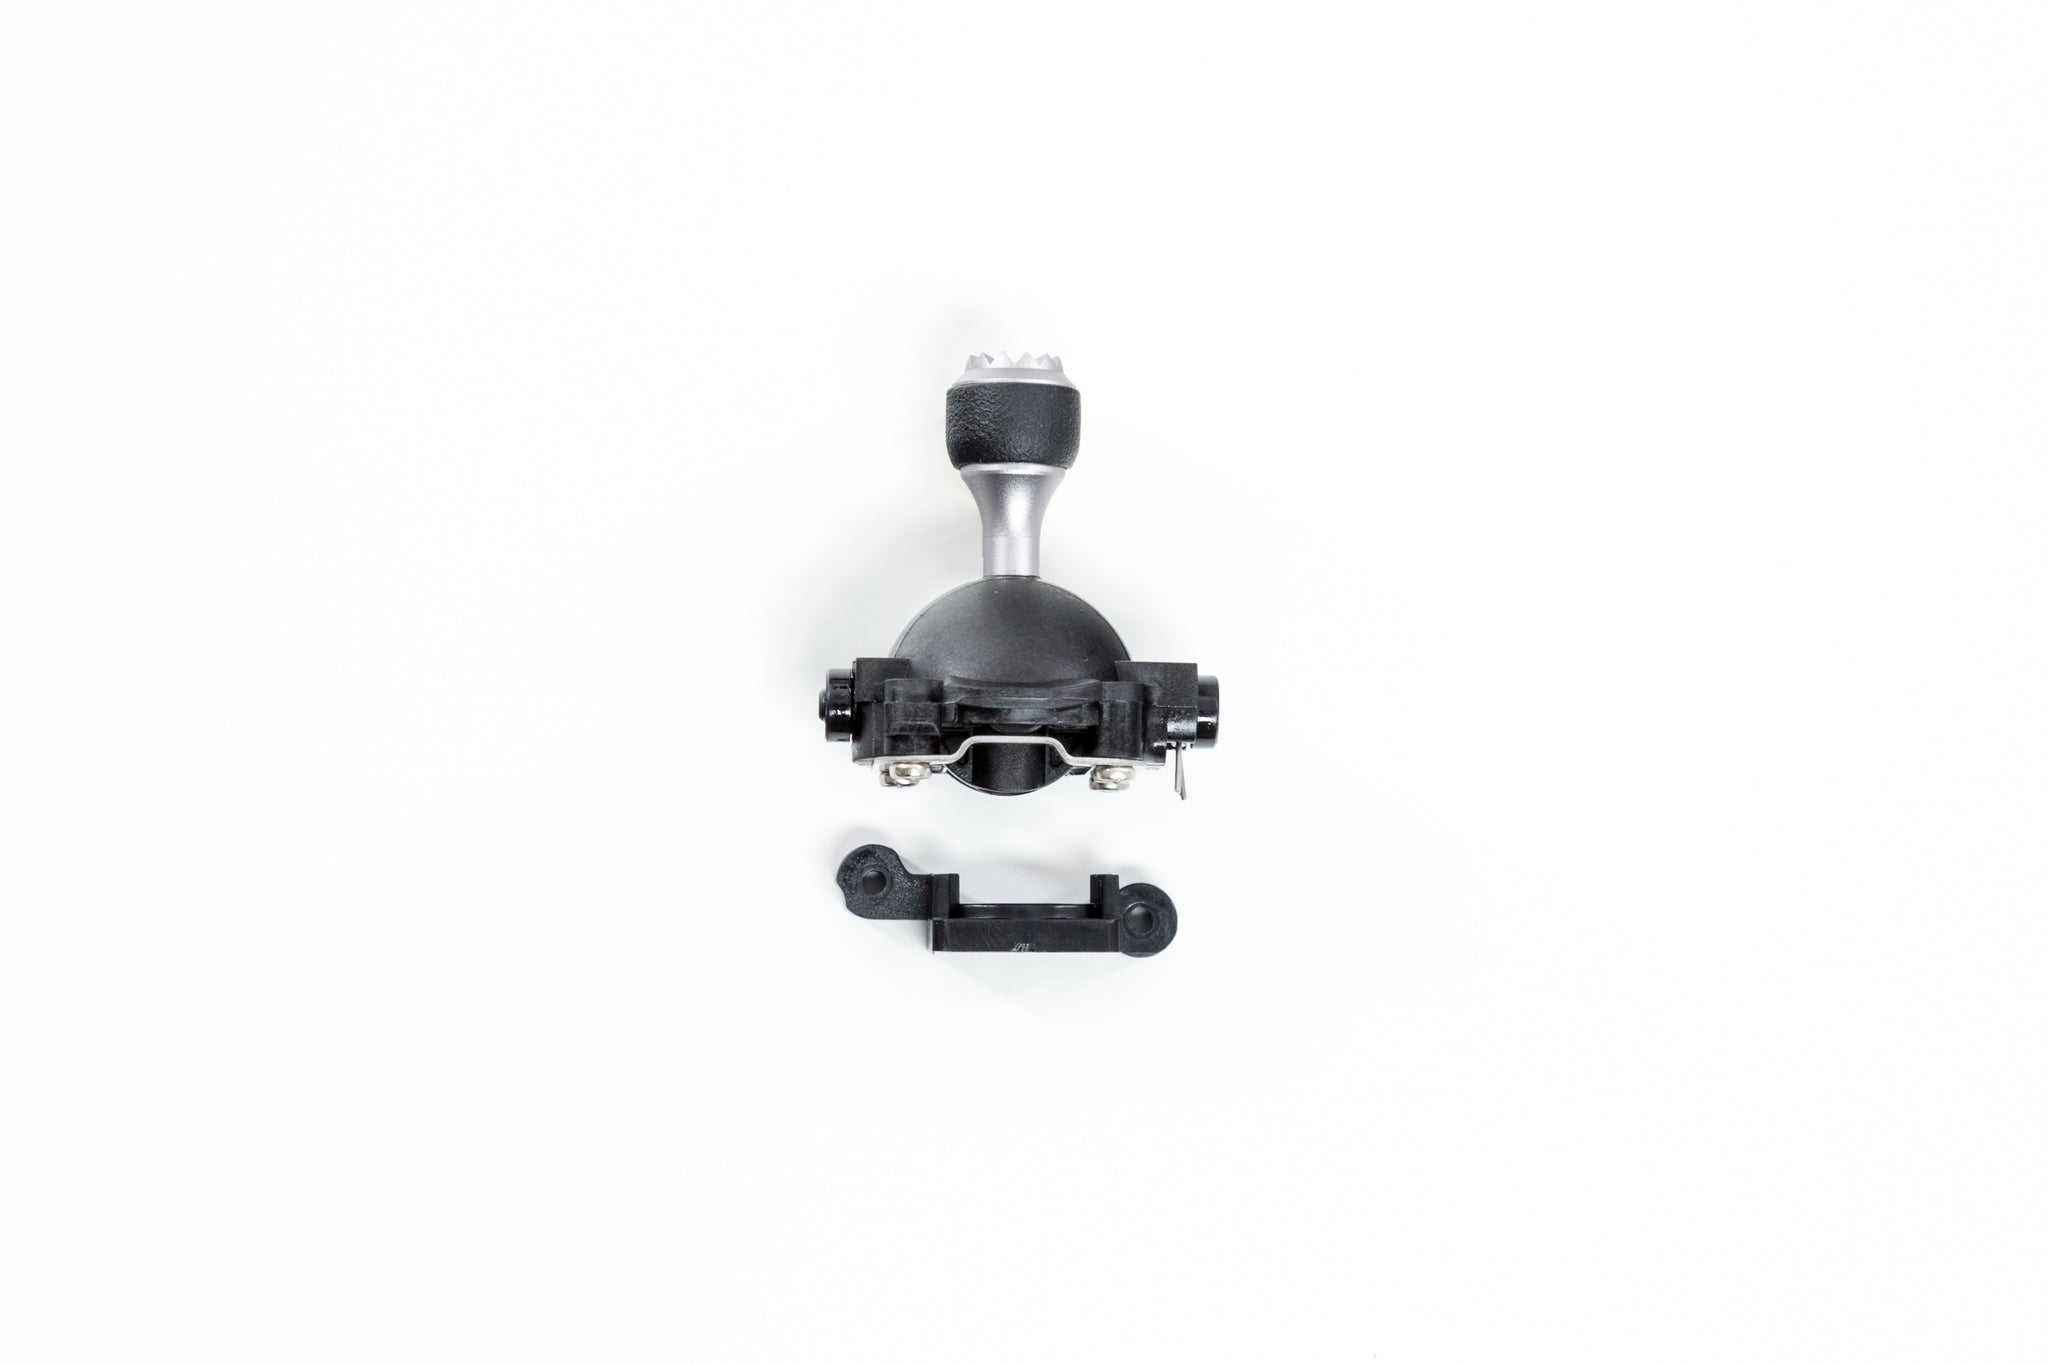 Mavic Pro RC Left Control Stick - Cloud City Drones